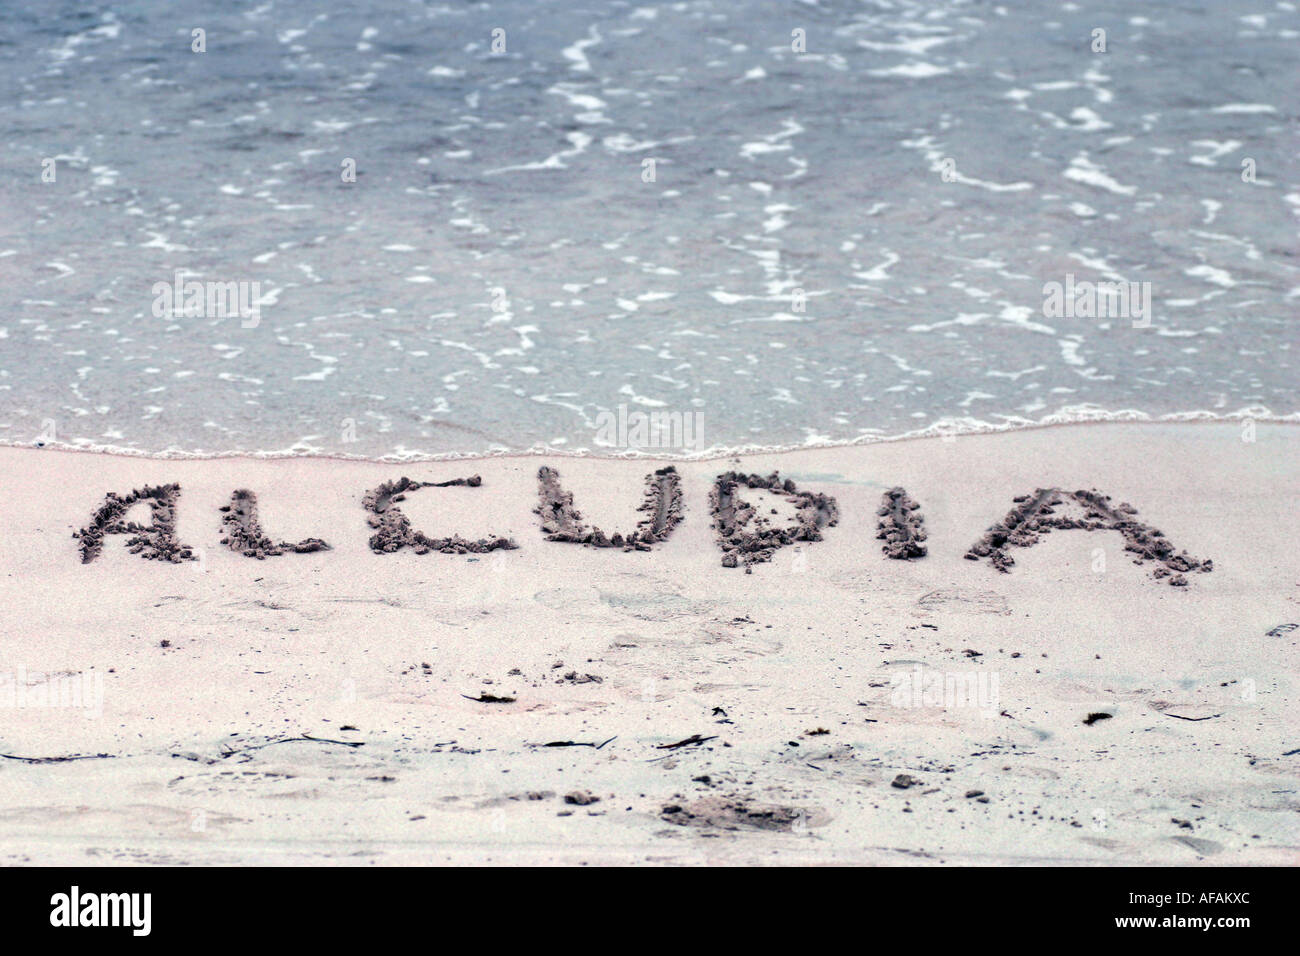 The word ALCUDIA is written in the sand by the sea in Alcudia Mallorca Spain - Stock Image